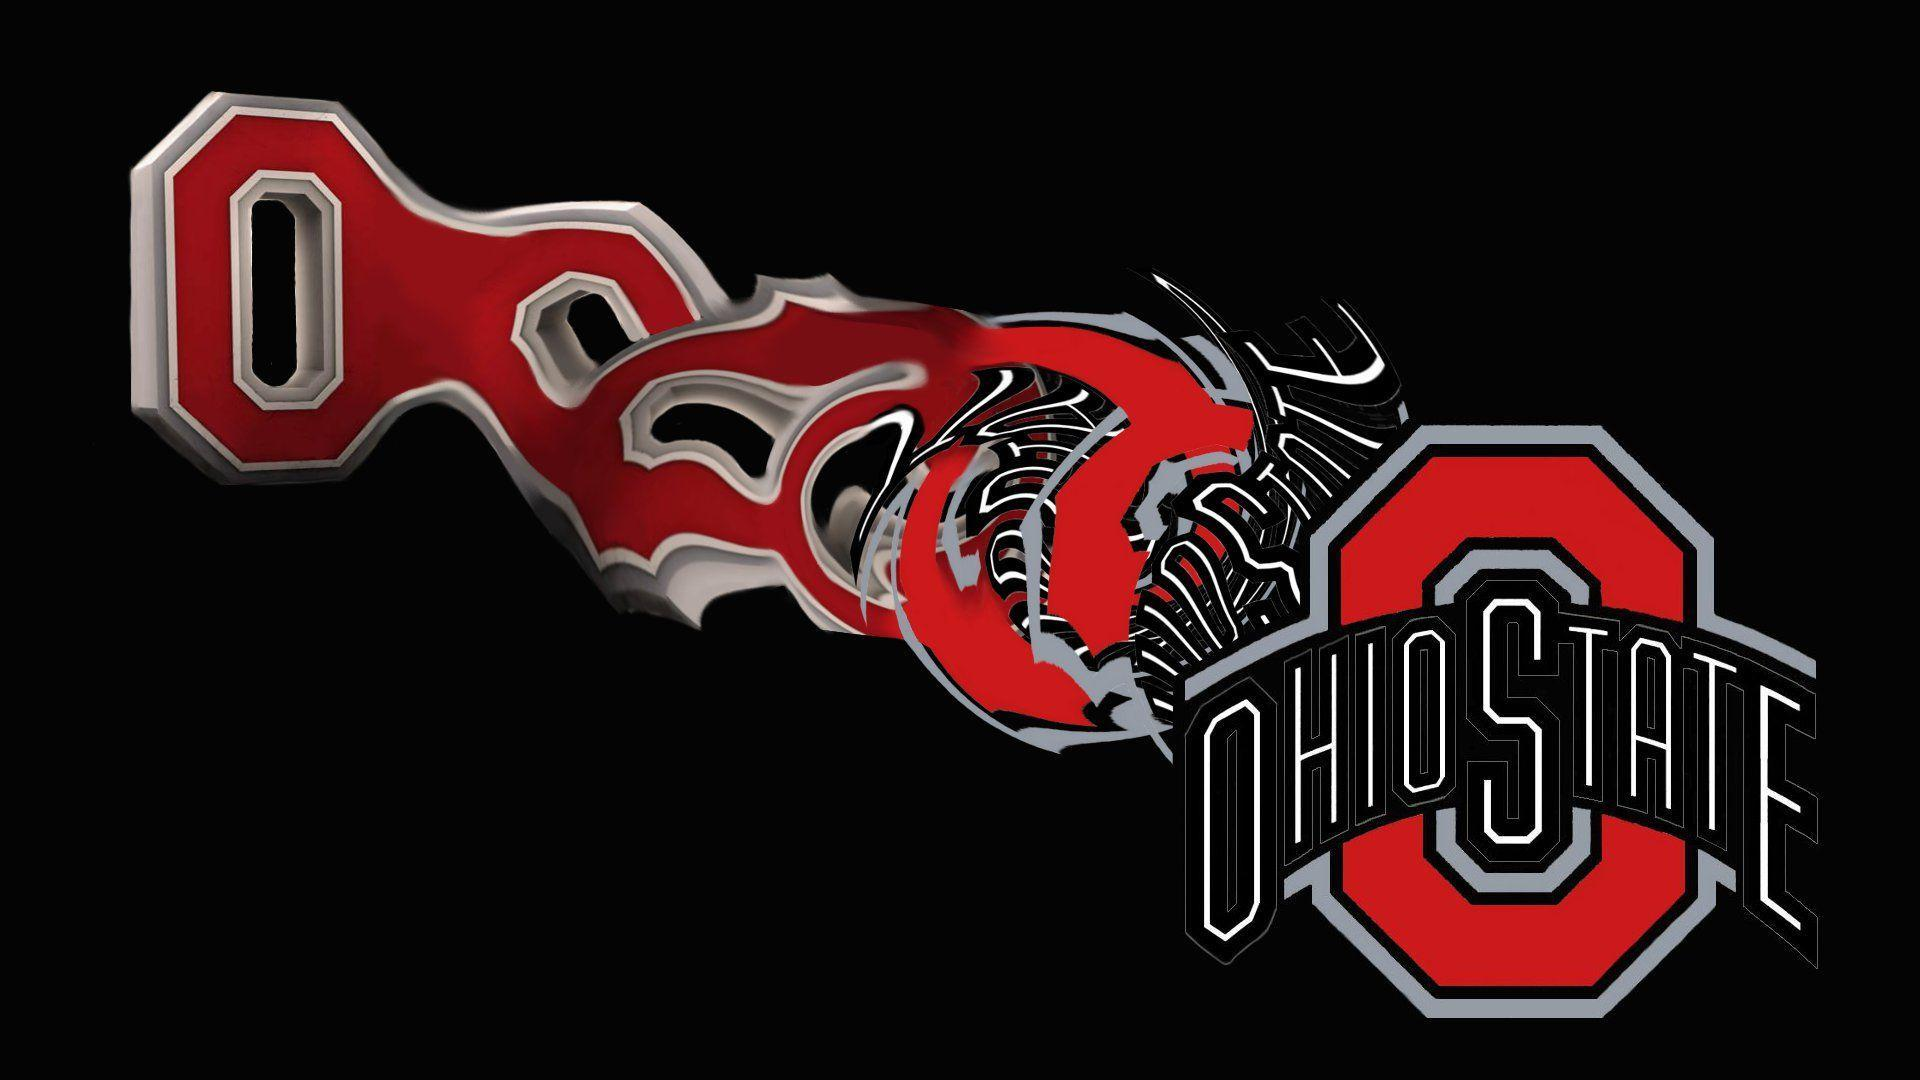 Ohio State Buckeyes Football Wallpaper 27409 Wallpapers